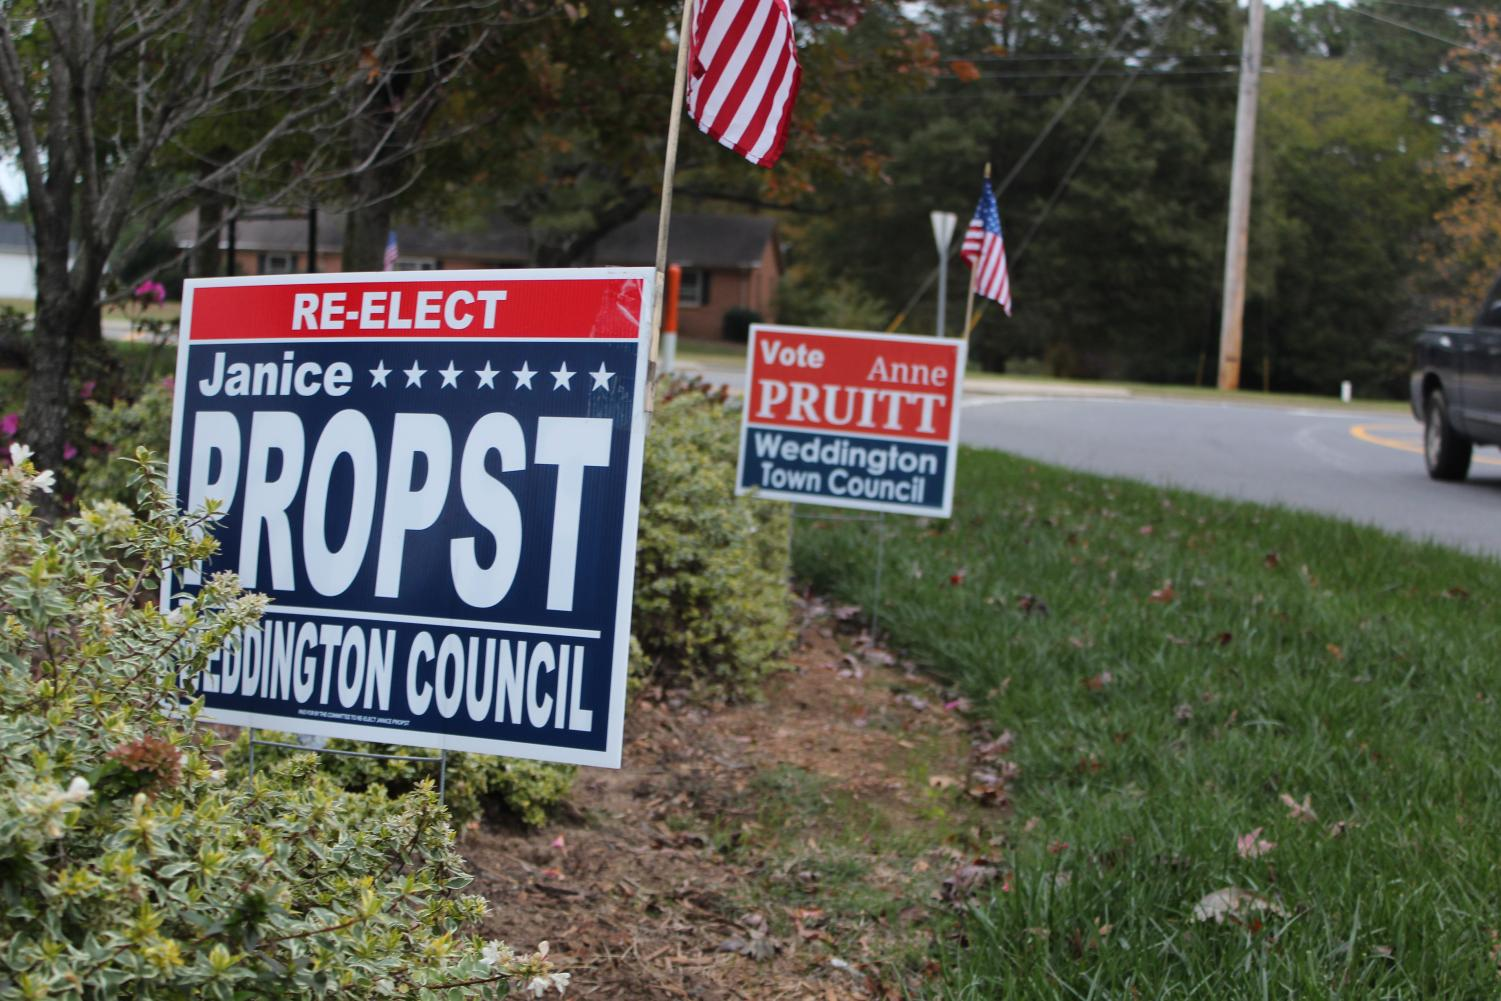 Janice Propst and Anne Puitt are both running for seats on Weddington's town council.